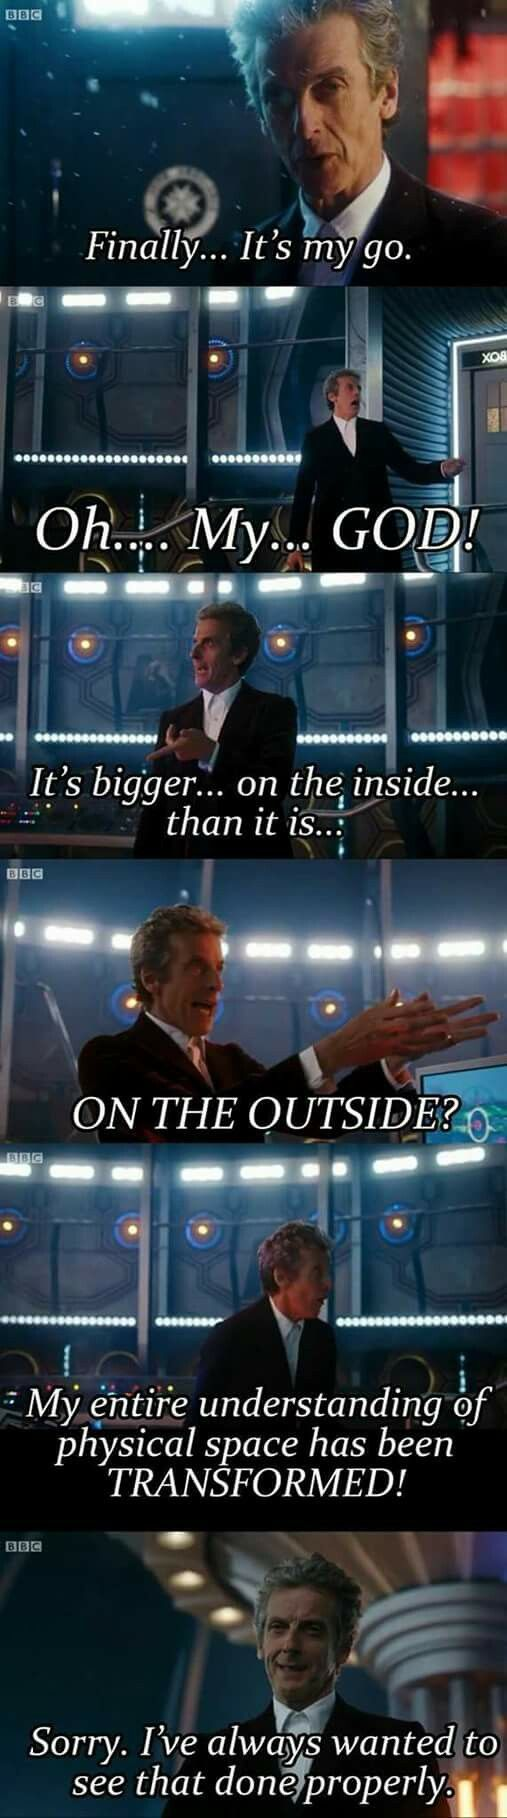 This was honestly one of the best moments. Capaldi is hilarious!